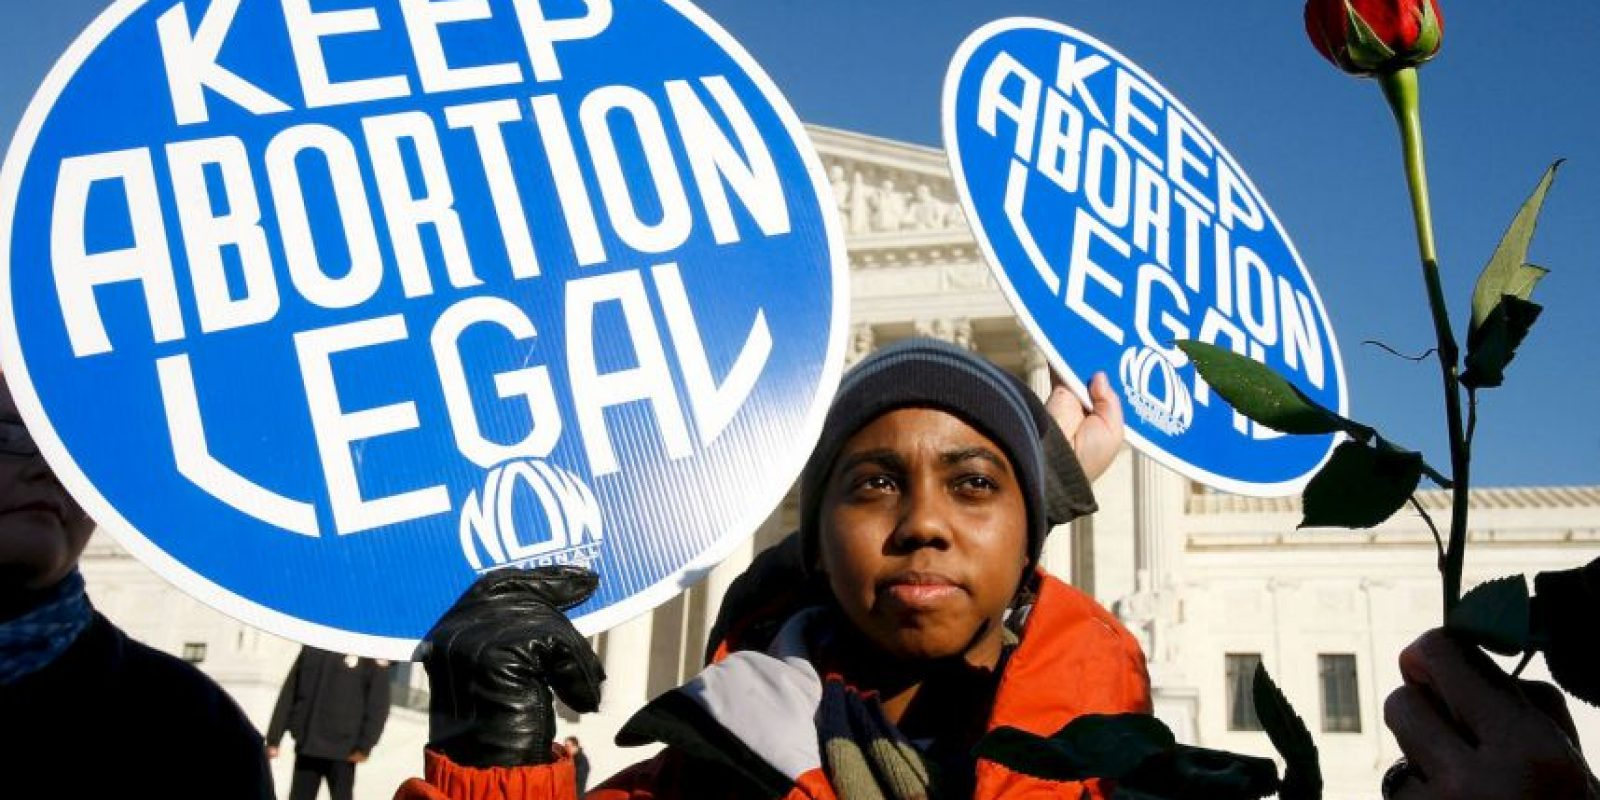 4. El aborto es legal- Foto: Getty Images